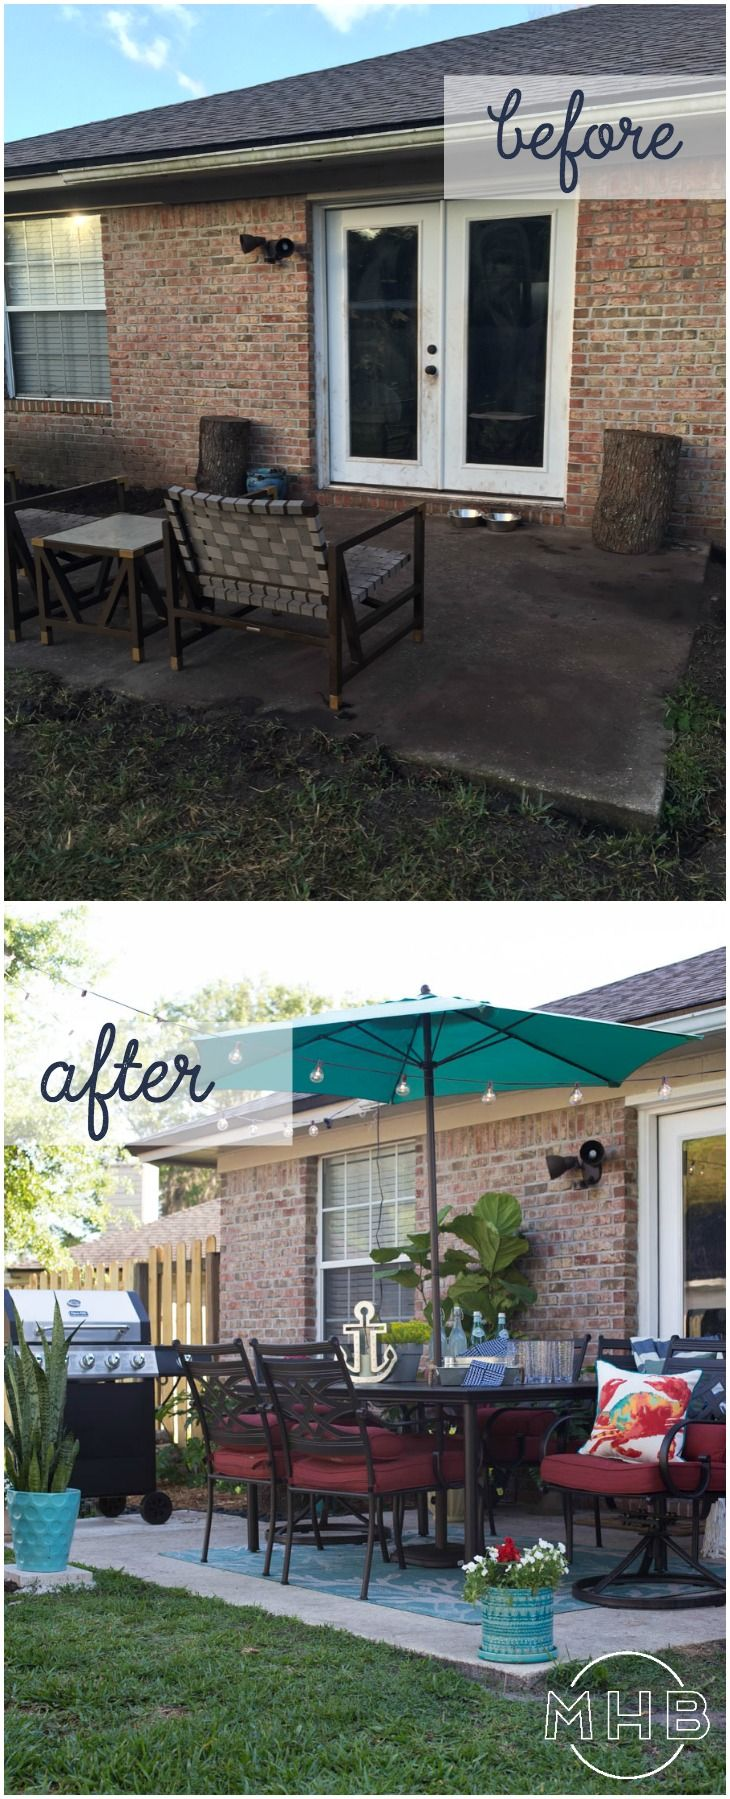 Patio Makeover - I love how achievable this patio is. Tons of seating, plants, string lights, umbrella, everything is great! #ad